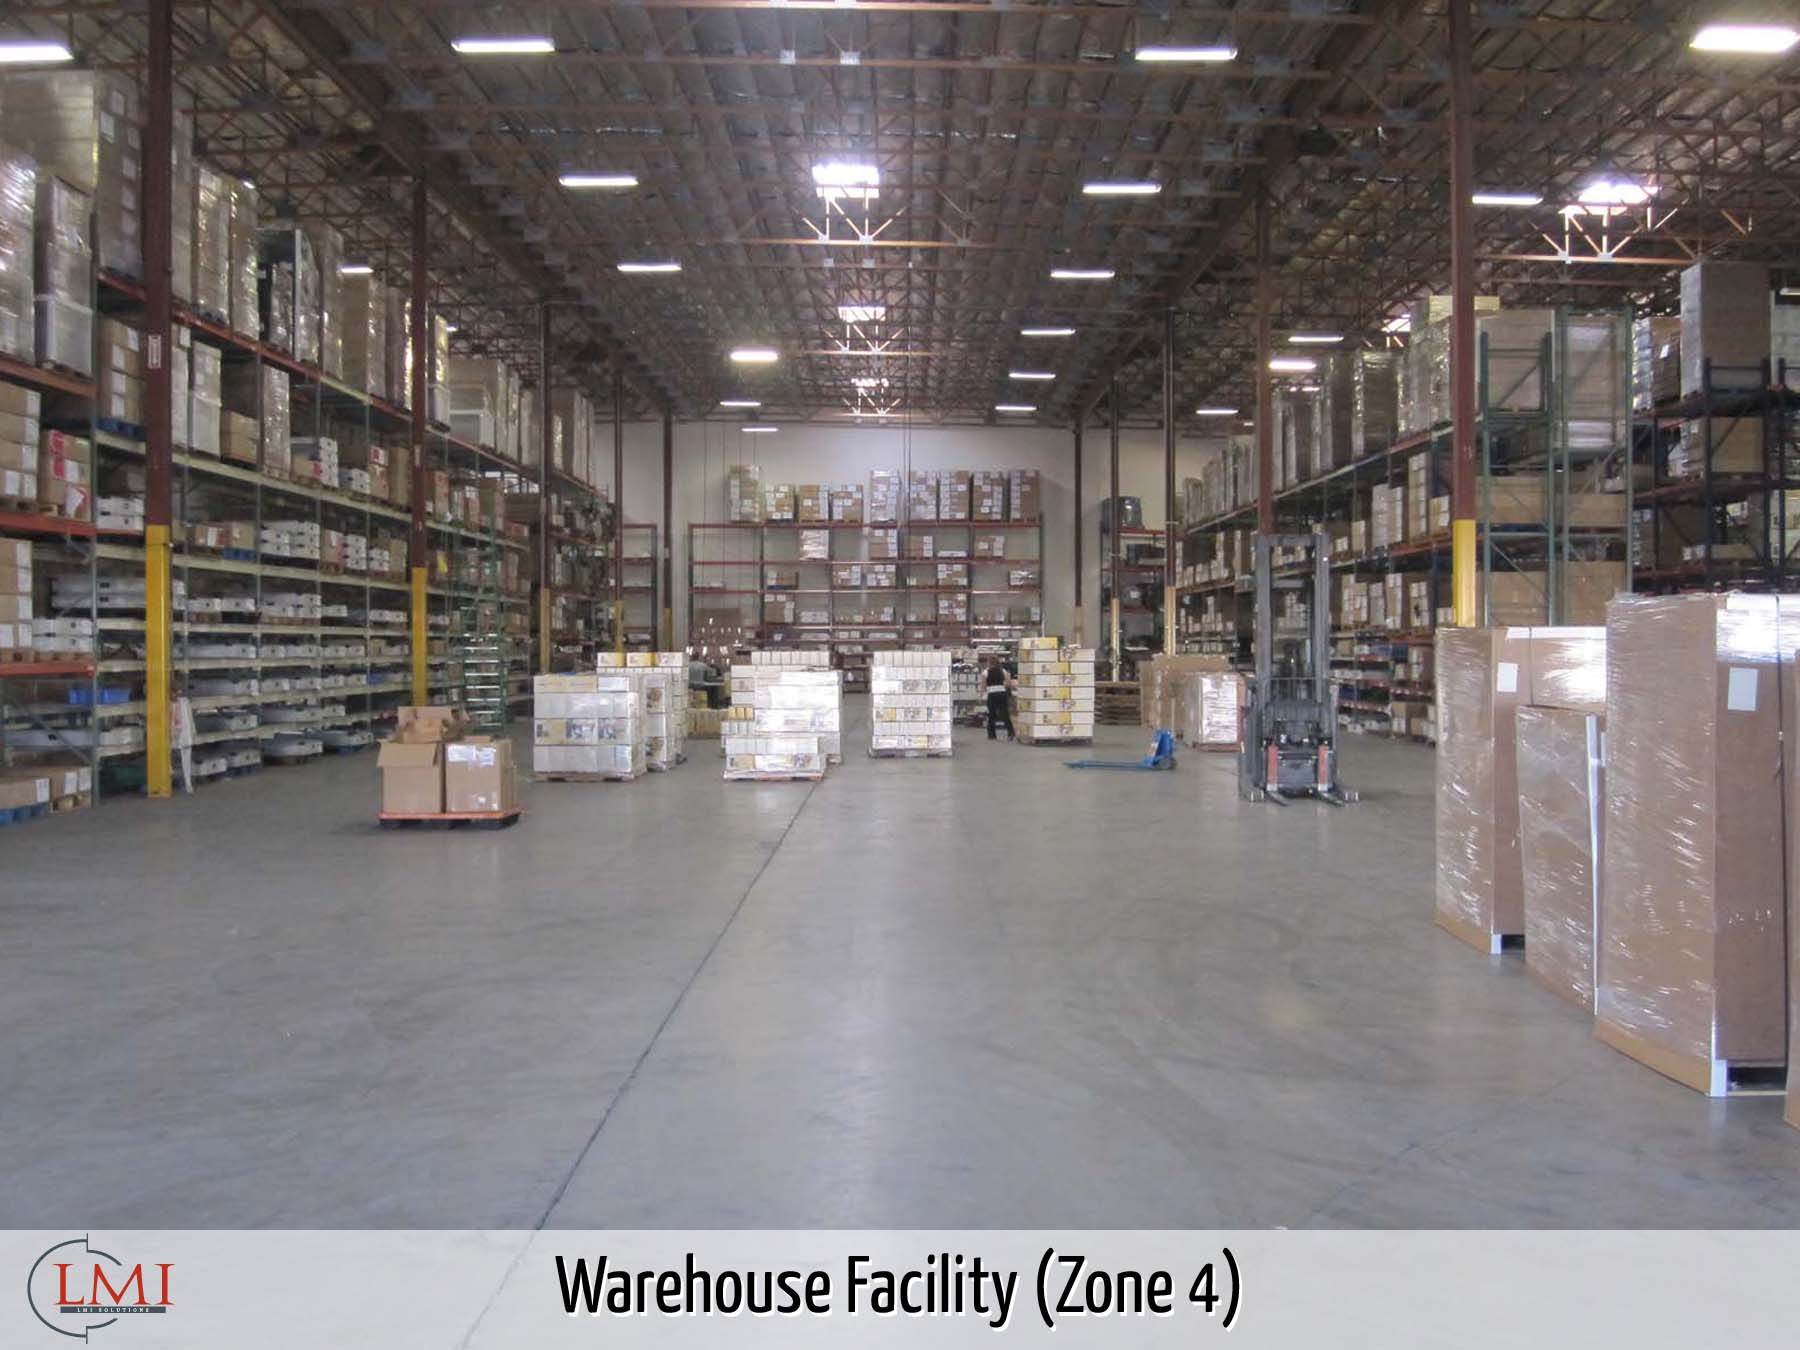 Warehouse Facility (Zone 4)